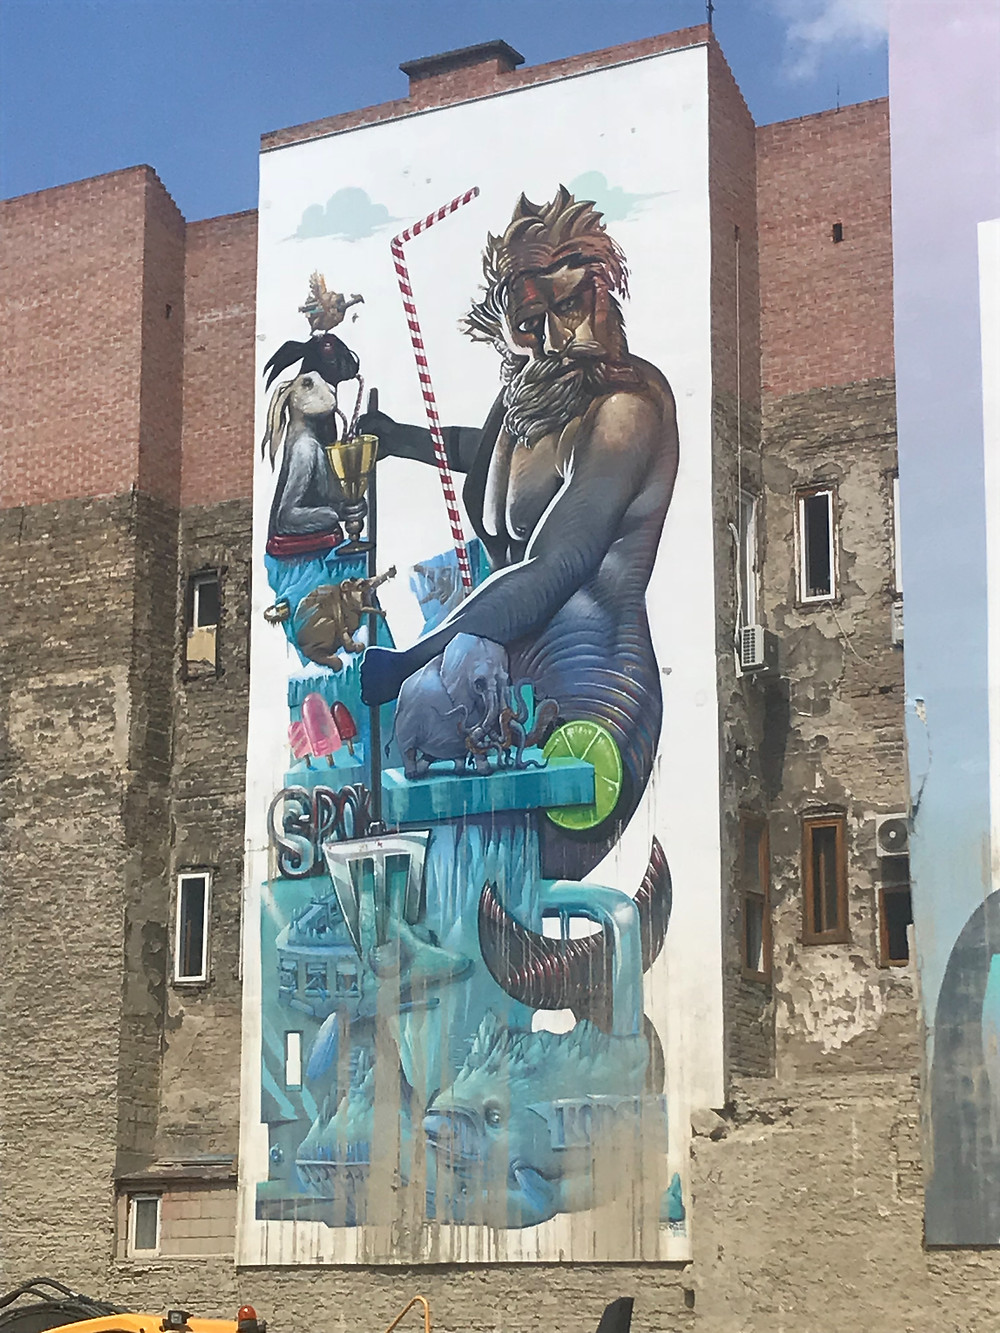 Unfourtanly, many Mural Paintings in Budapest will disappear:Poseidon | Artist: Felix Spok Brillor and KÓRZE | Location:  Nagy Diófa street 14